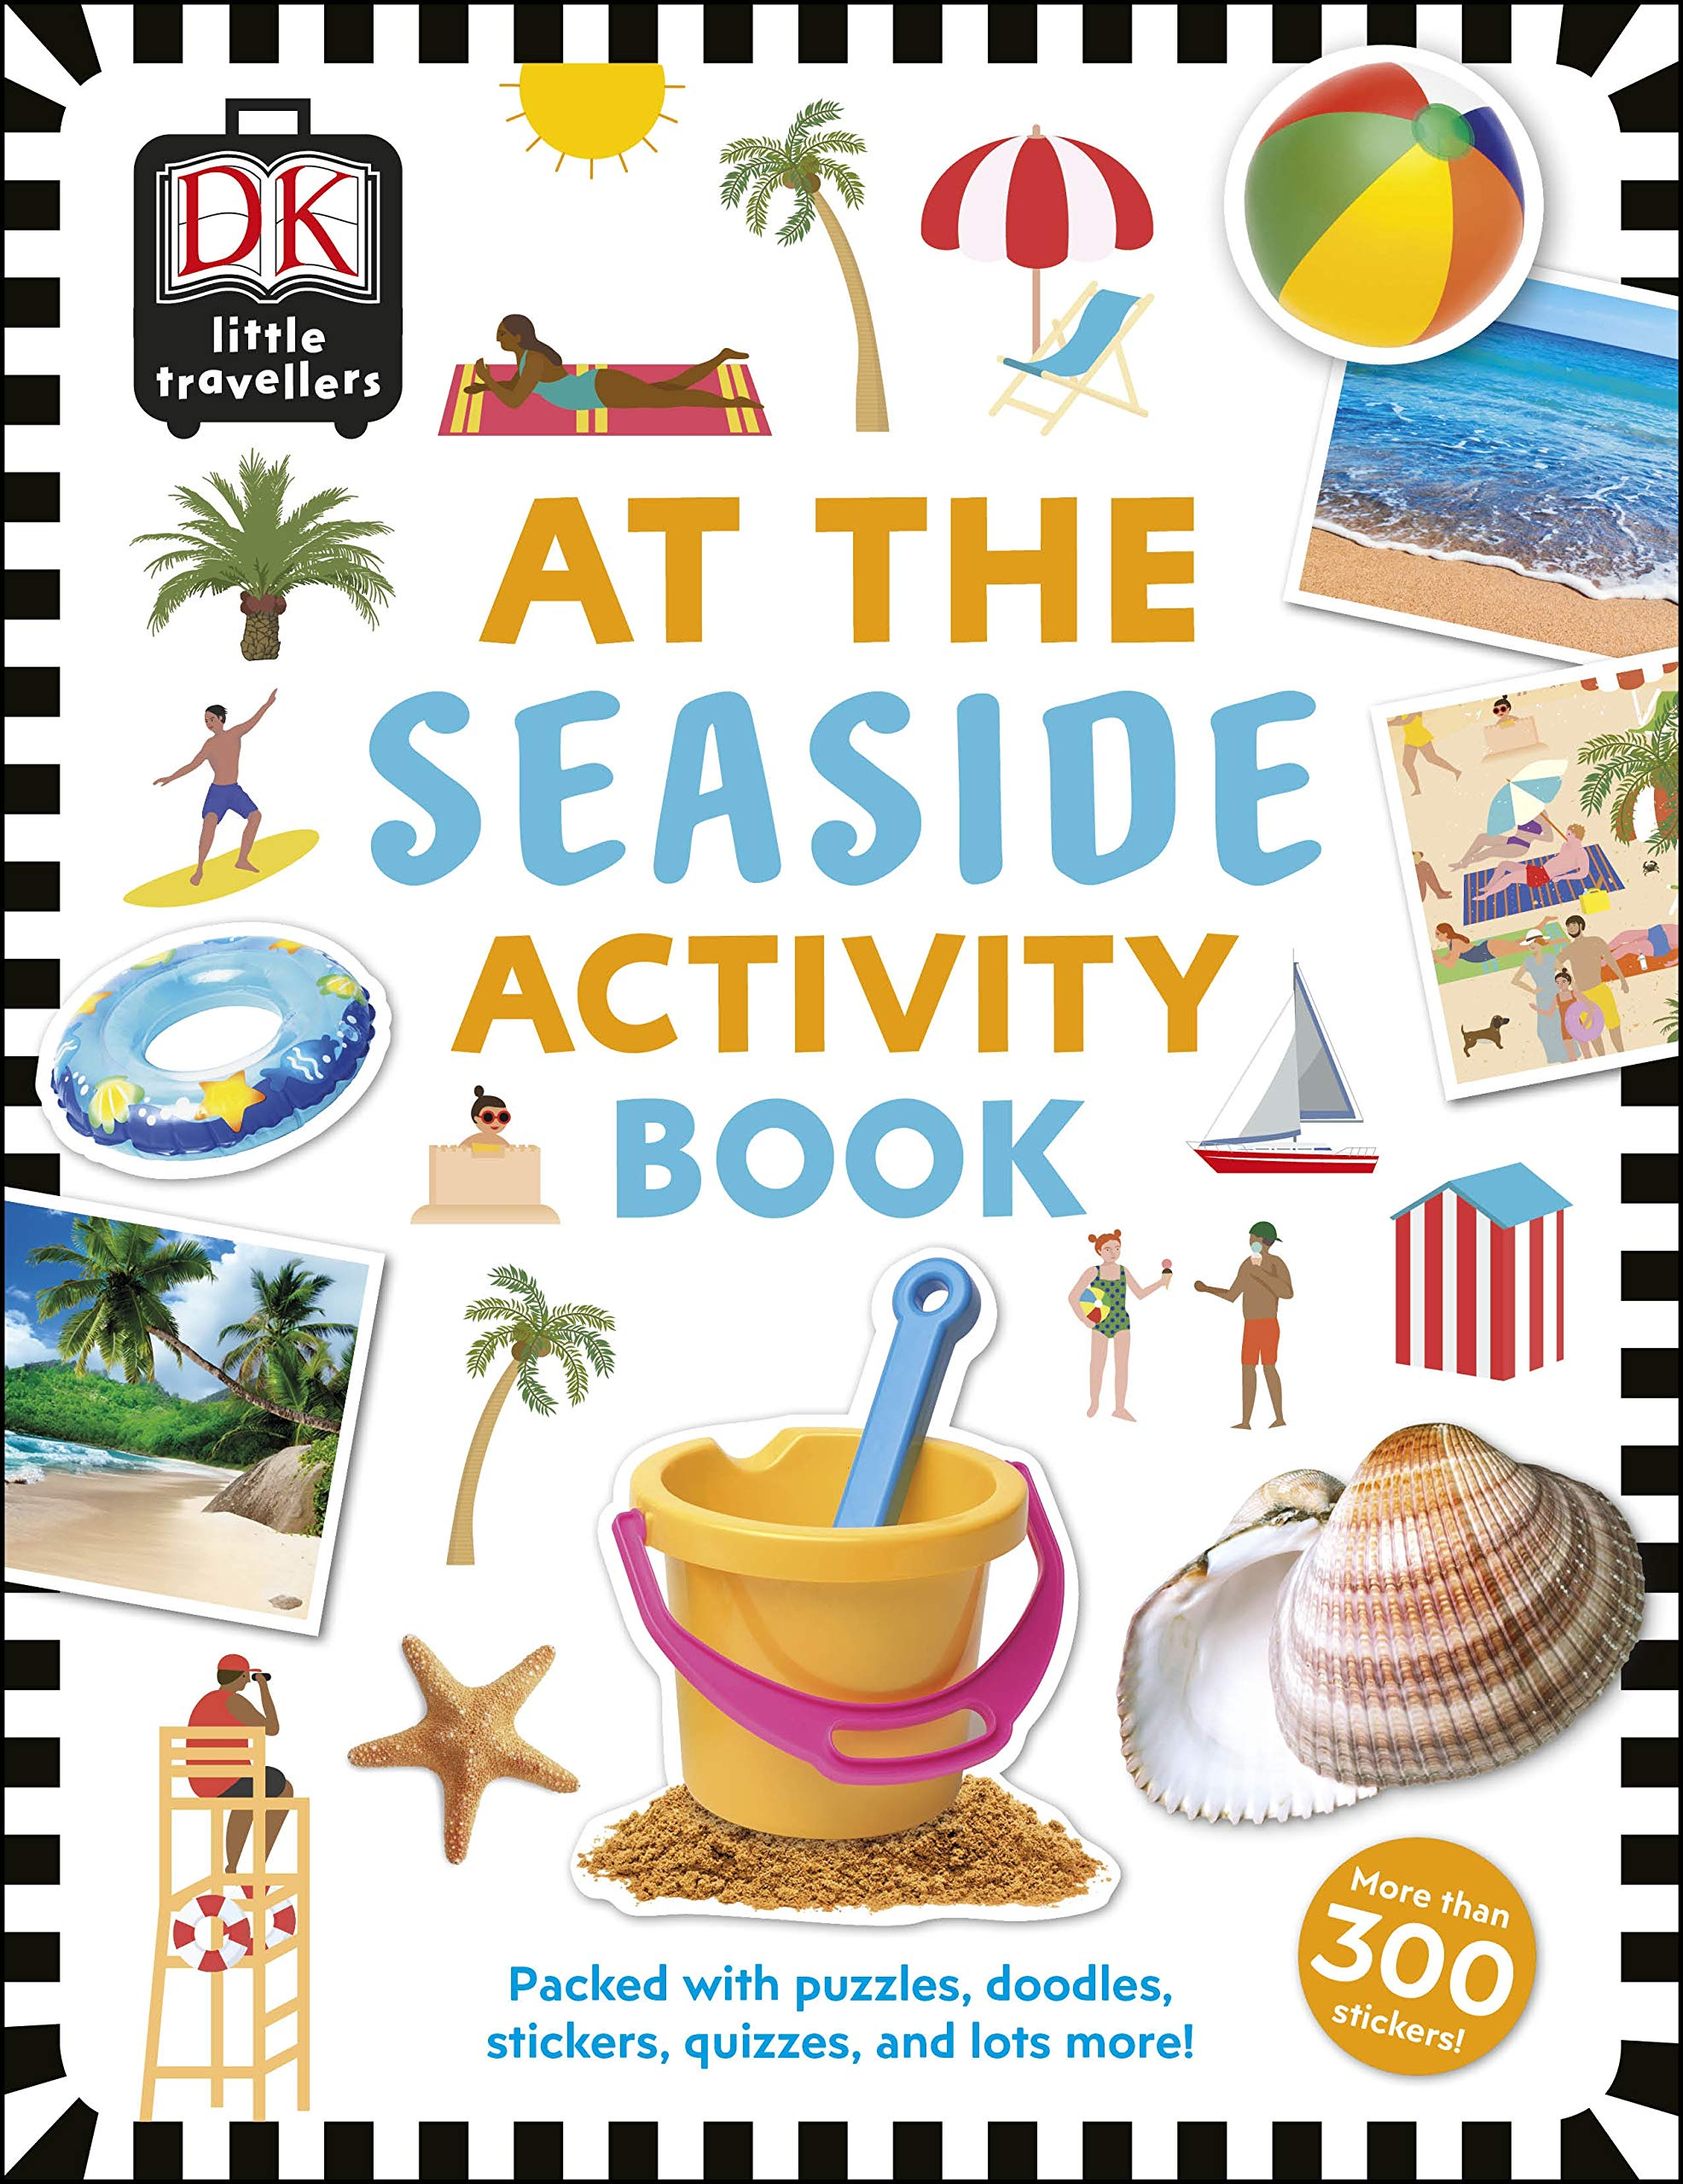 At the Seaside Activity Book: Includes more than 300 Stickers por DK